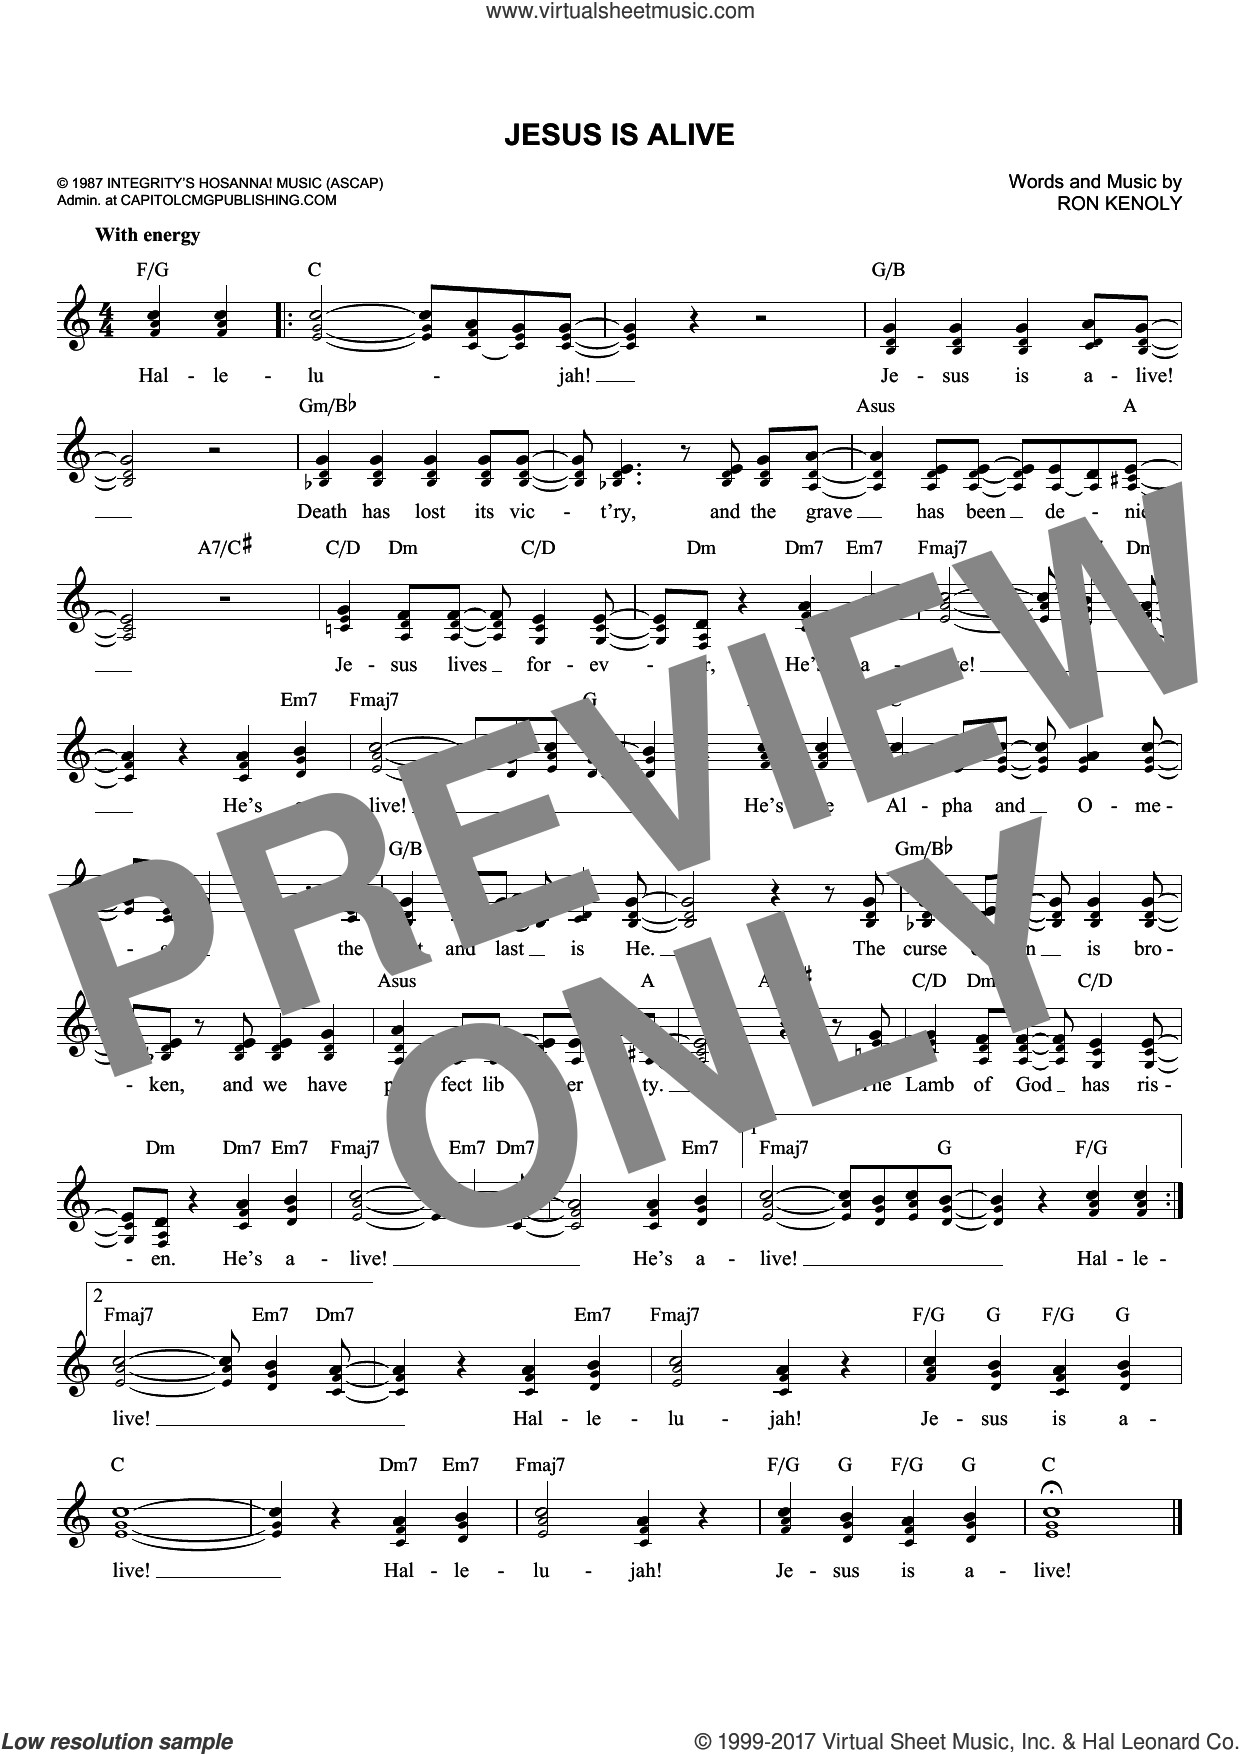 Jesus Is Alive sheet music for voice and other instruments (fake book) by Ron Kenoly. Score Image Preview.